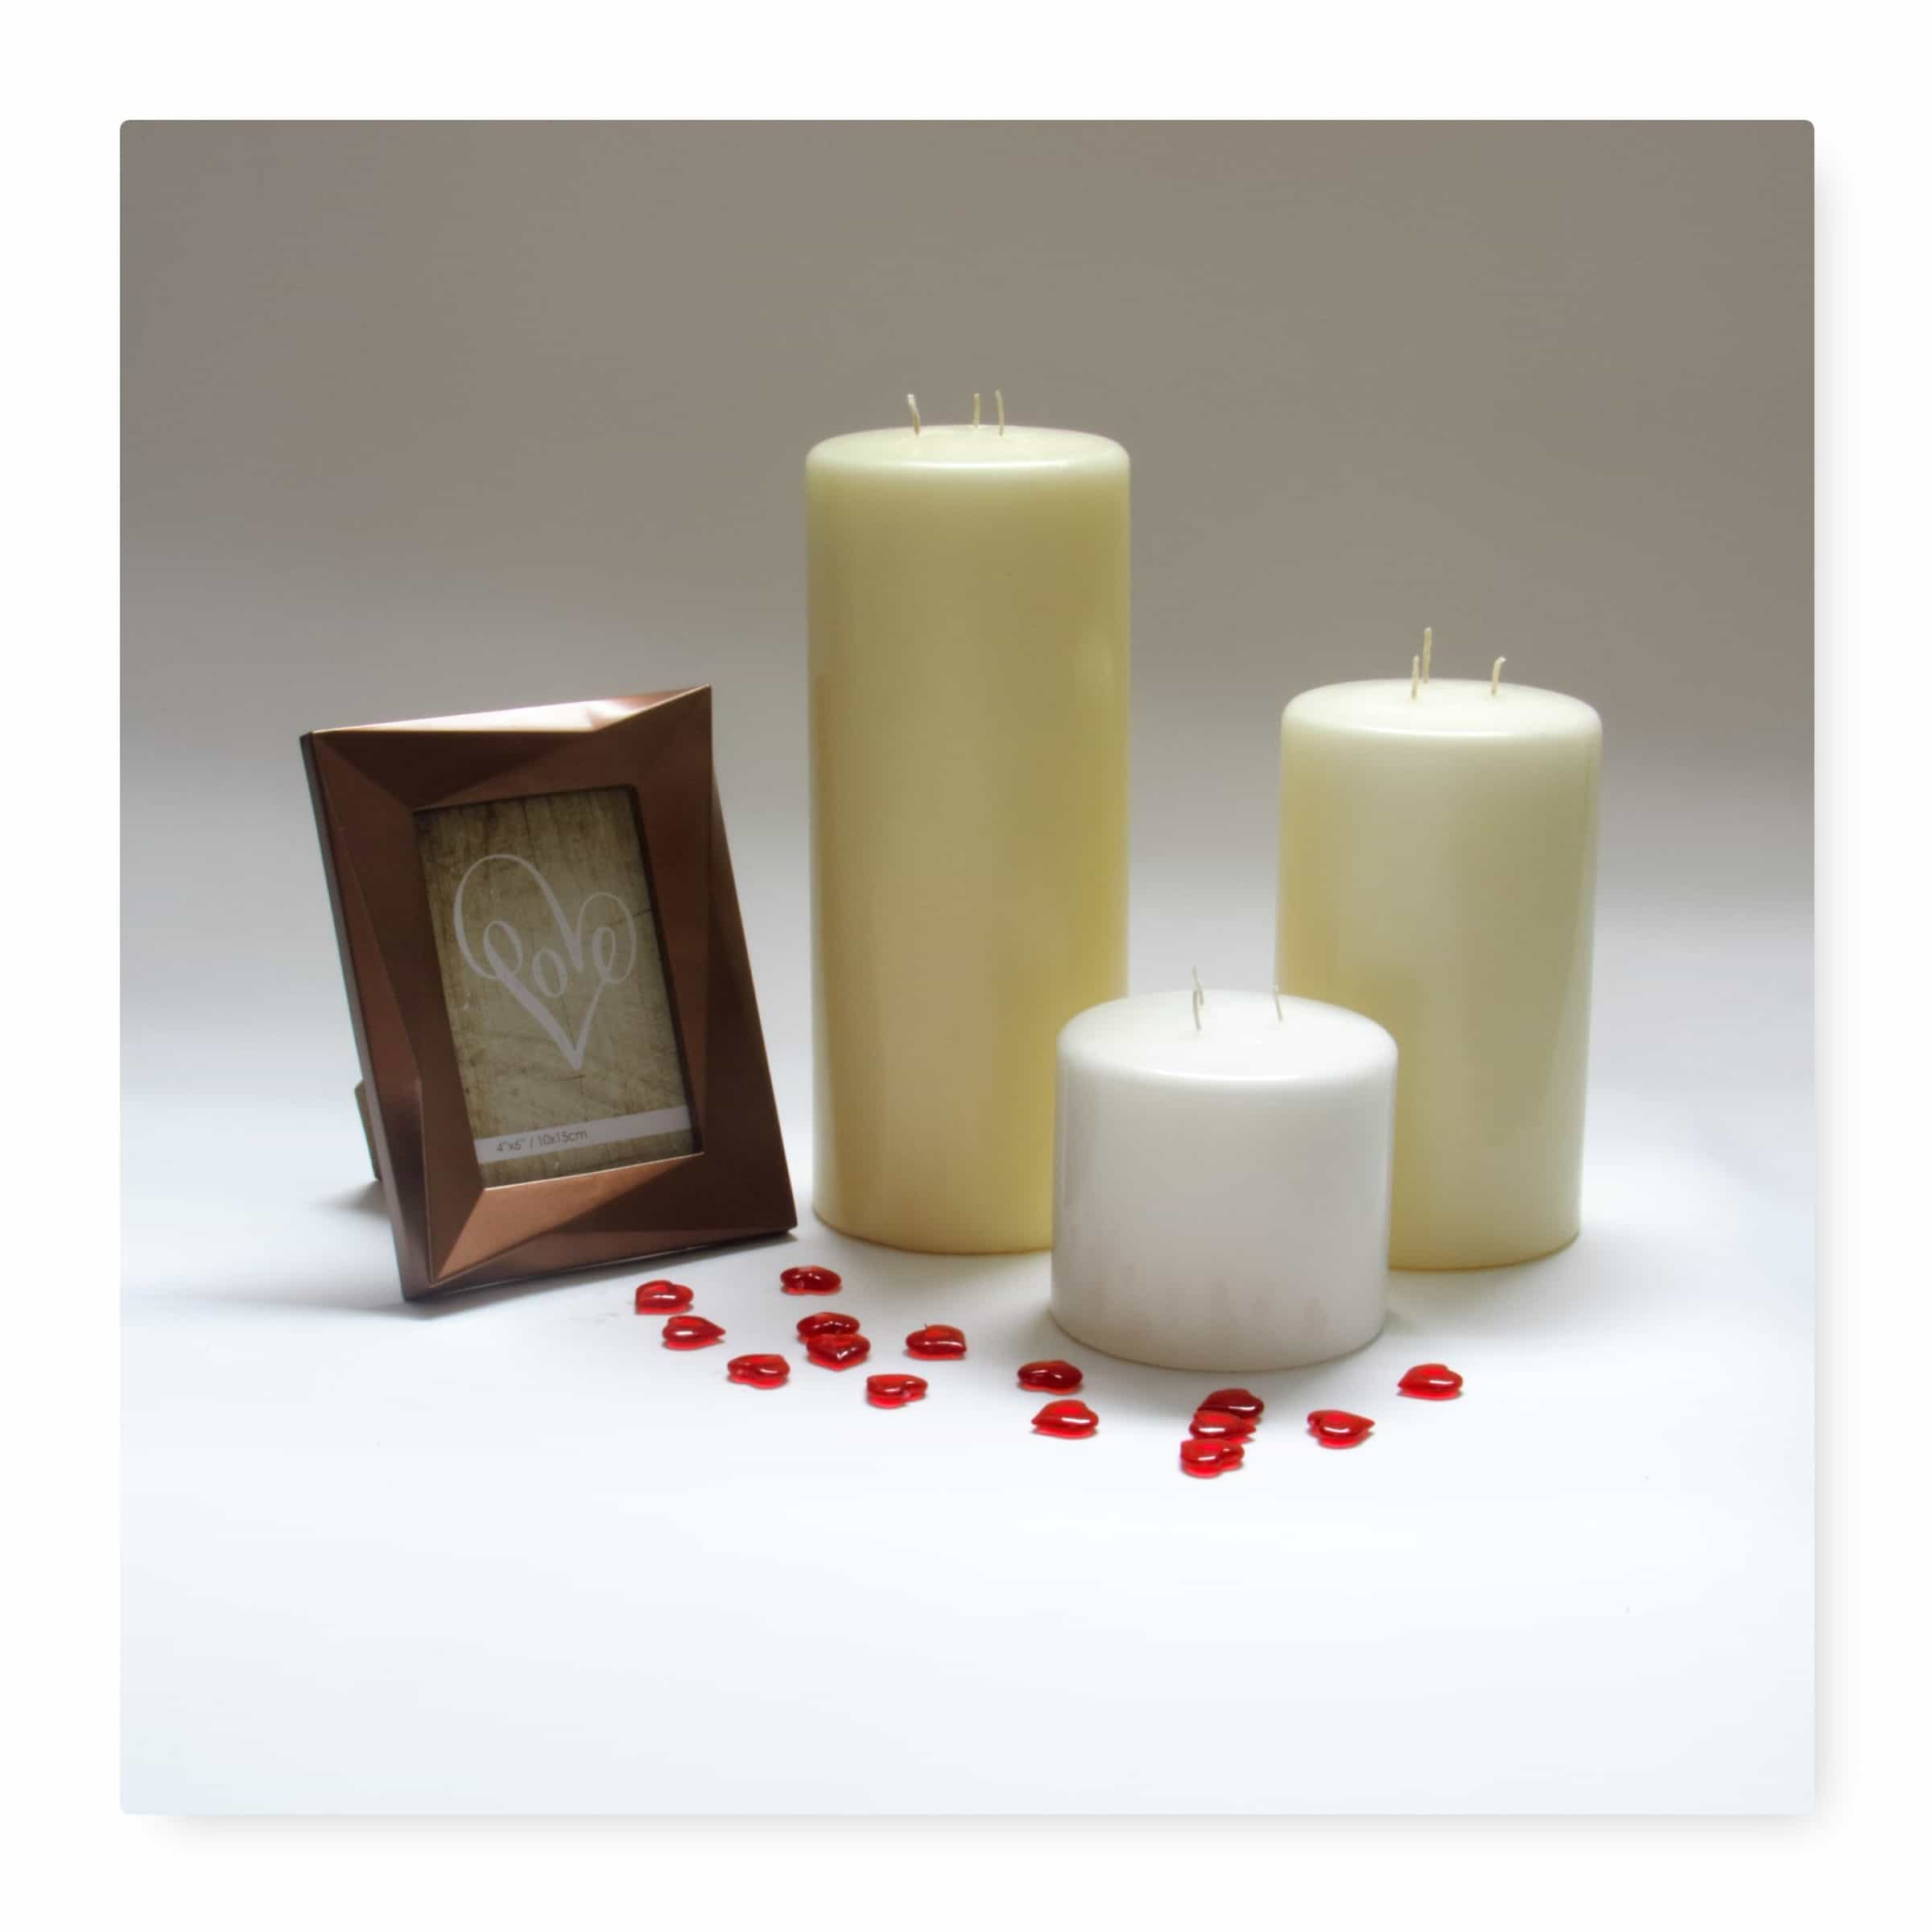 3 wick candles, three wick candle, large 3 wick candles, aromatherapy candles, long burning candles,extra large candles ,large candles, candles uk, bulk candles, wholesale candles, organic candles, church candles, candles online, white candles, candle sale, candle set, scented candles, unique candles, big candles, white pillar candles, wedding candles, tall candles, large pillar candles, pillar candles bulk, best smelling candles, best scented candles, religious candles, vanilla candles, christmas scented candles, wholesale candle supplies, best candles, scented pillar candles, candle companies, candle supplies, luxury scented candles, long lasting candles, nice candles, giant candles, buy candles, beautiful candles, scented candles wholesale, unusual candles, spiritual candles, multi wick candle, vanilla scented candles, spa candles, huge candles, table candles, large scented candles, pretty candles, smelly candles, home candles, candle shop, easter candle, candle store, candle factory, candle manufacturers, buy candles in bulk, natural scented candles, special candles, the candle shop, 3 wick candles uk, candle warehouse, the candle company, scented candle shop,